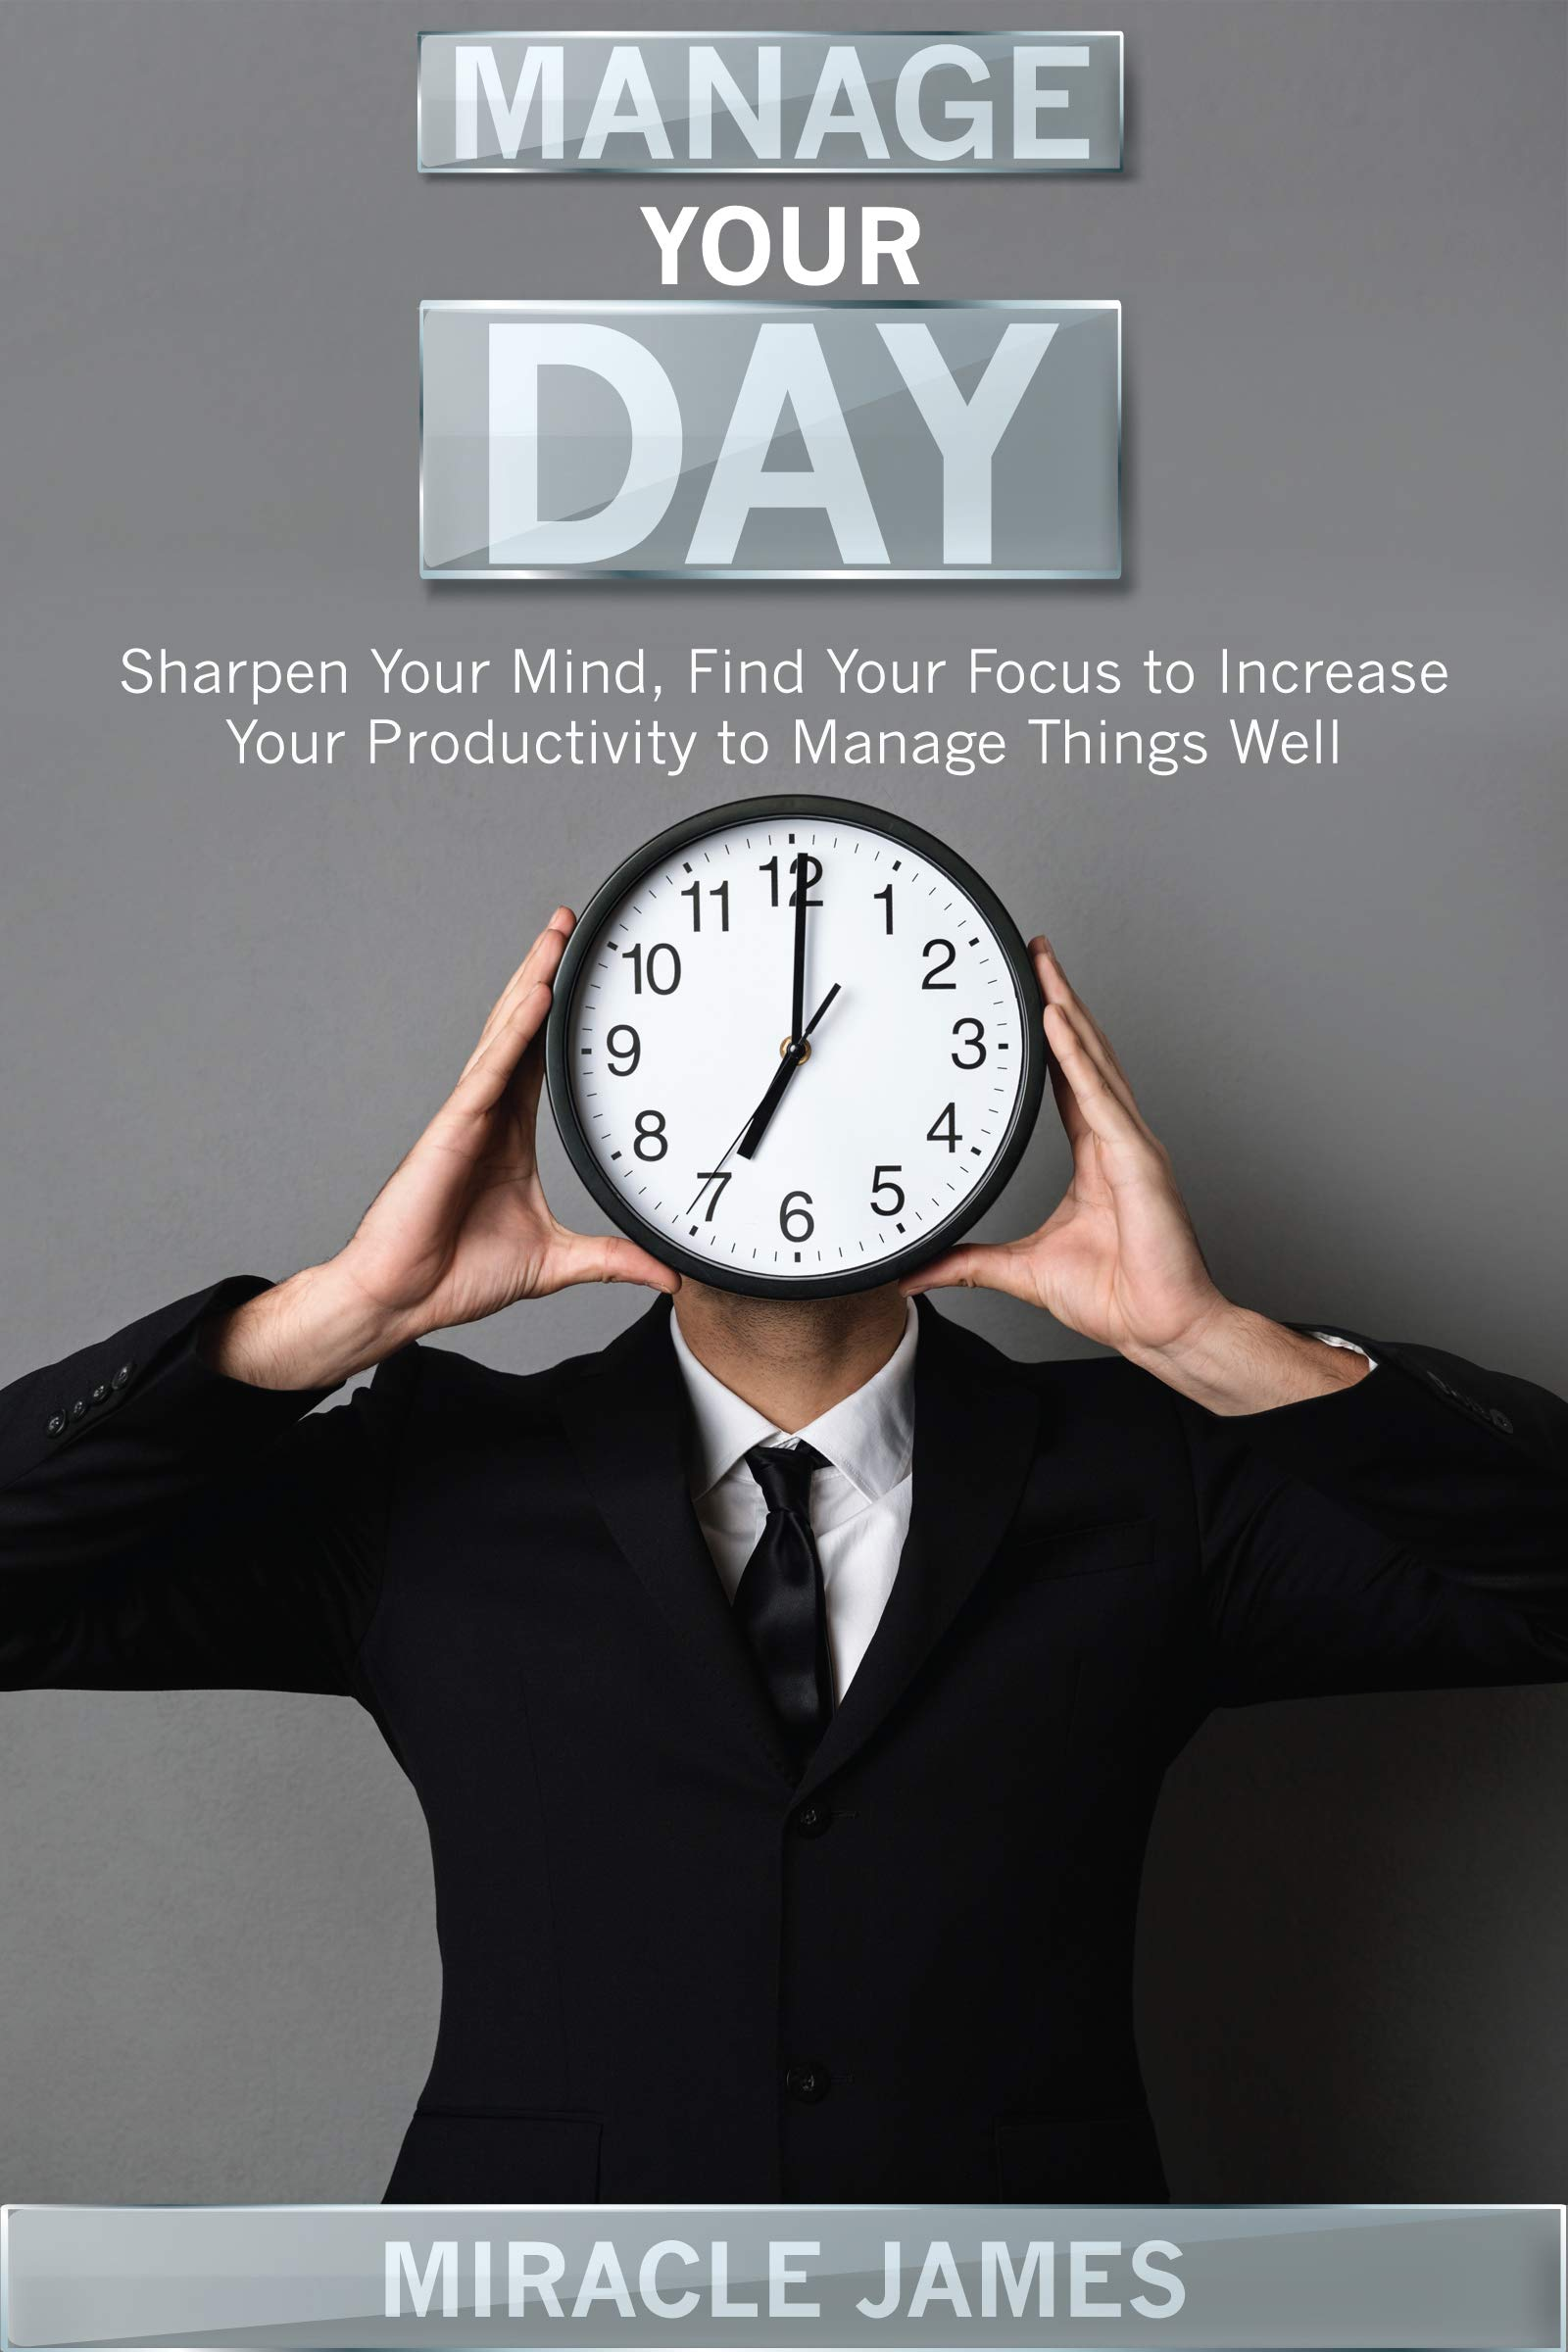 Manage Your Day: Sharpen Your Mind, Find Your Focus to Increase Your Productivity to Manage Things Well